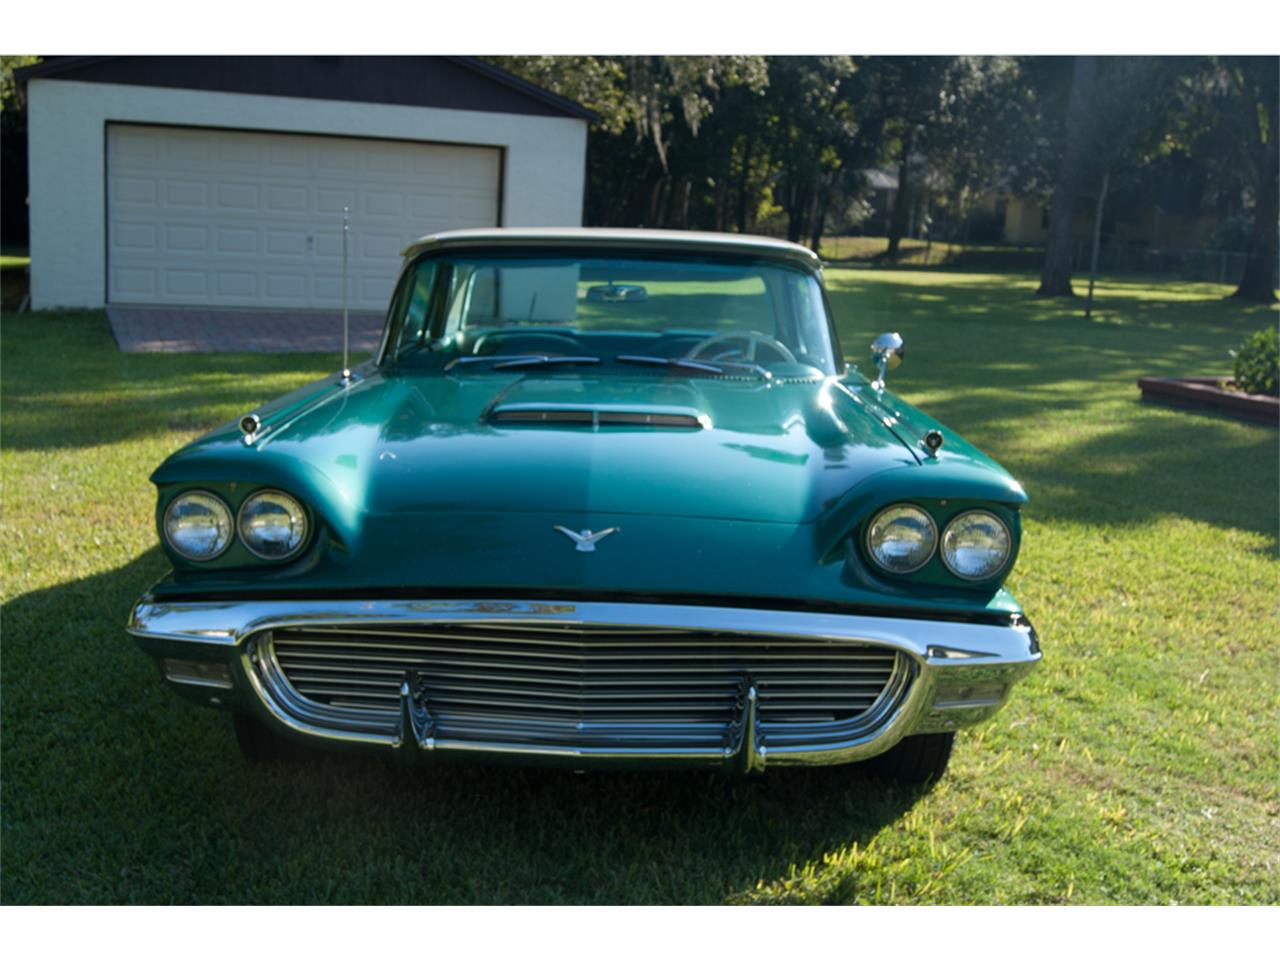 Large Picture of Classic '59 Ford Thunderbird - $15,500.00 - LLRY